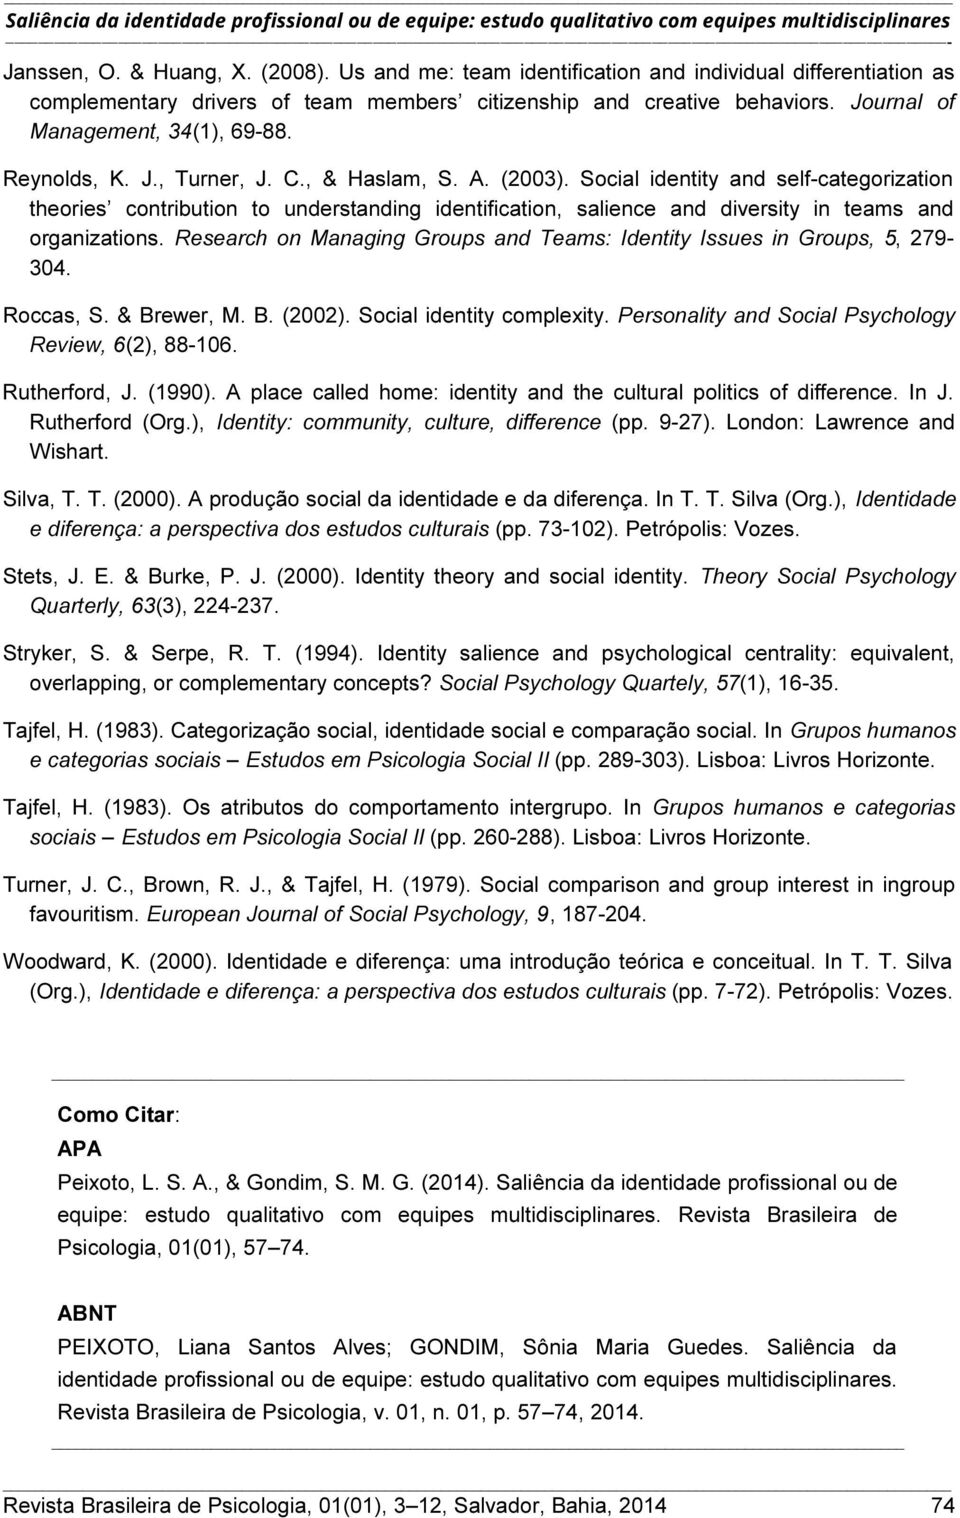 Social identity and self-categorization theories contribution to understanding identification, salience and diversity in teams and organizations.